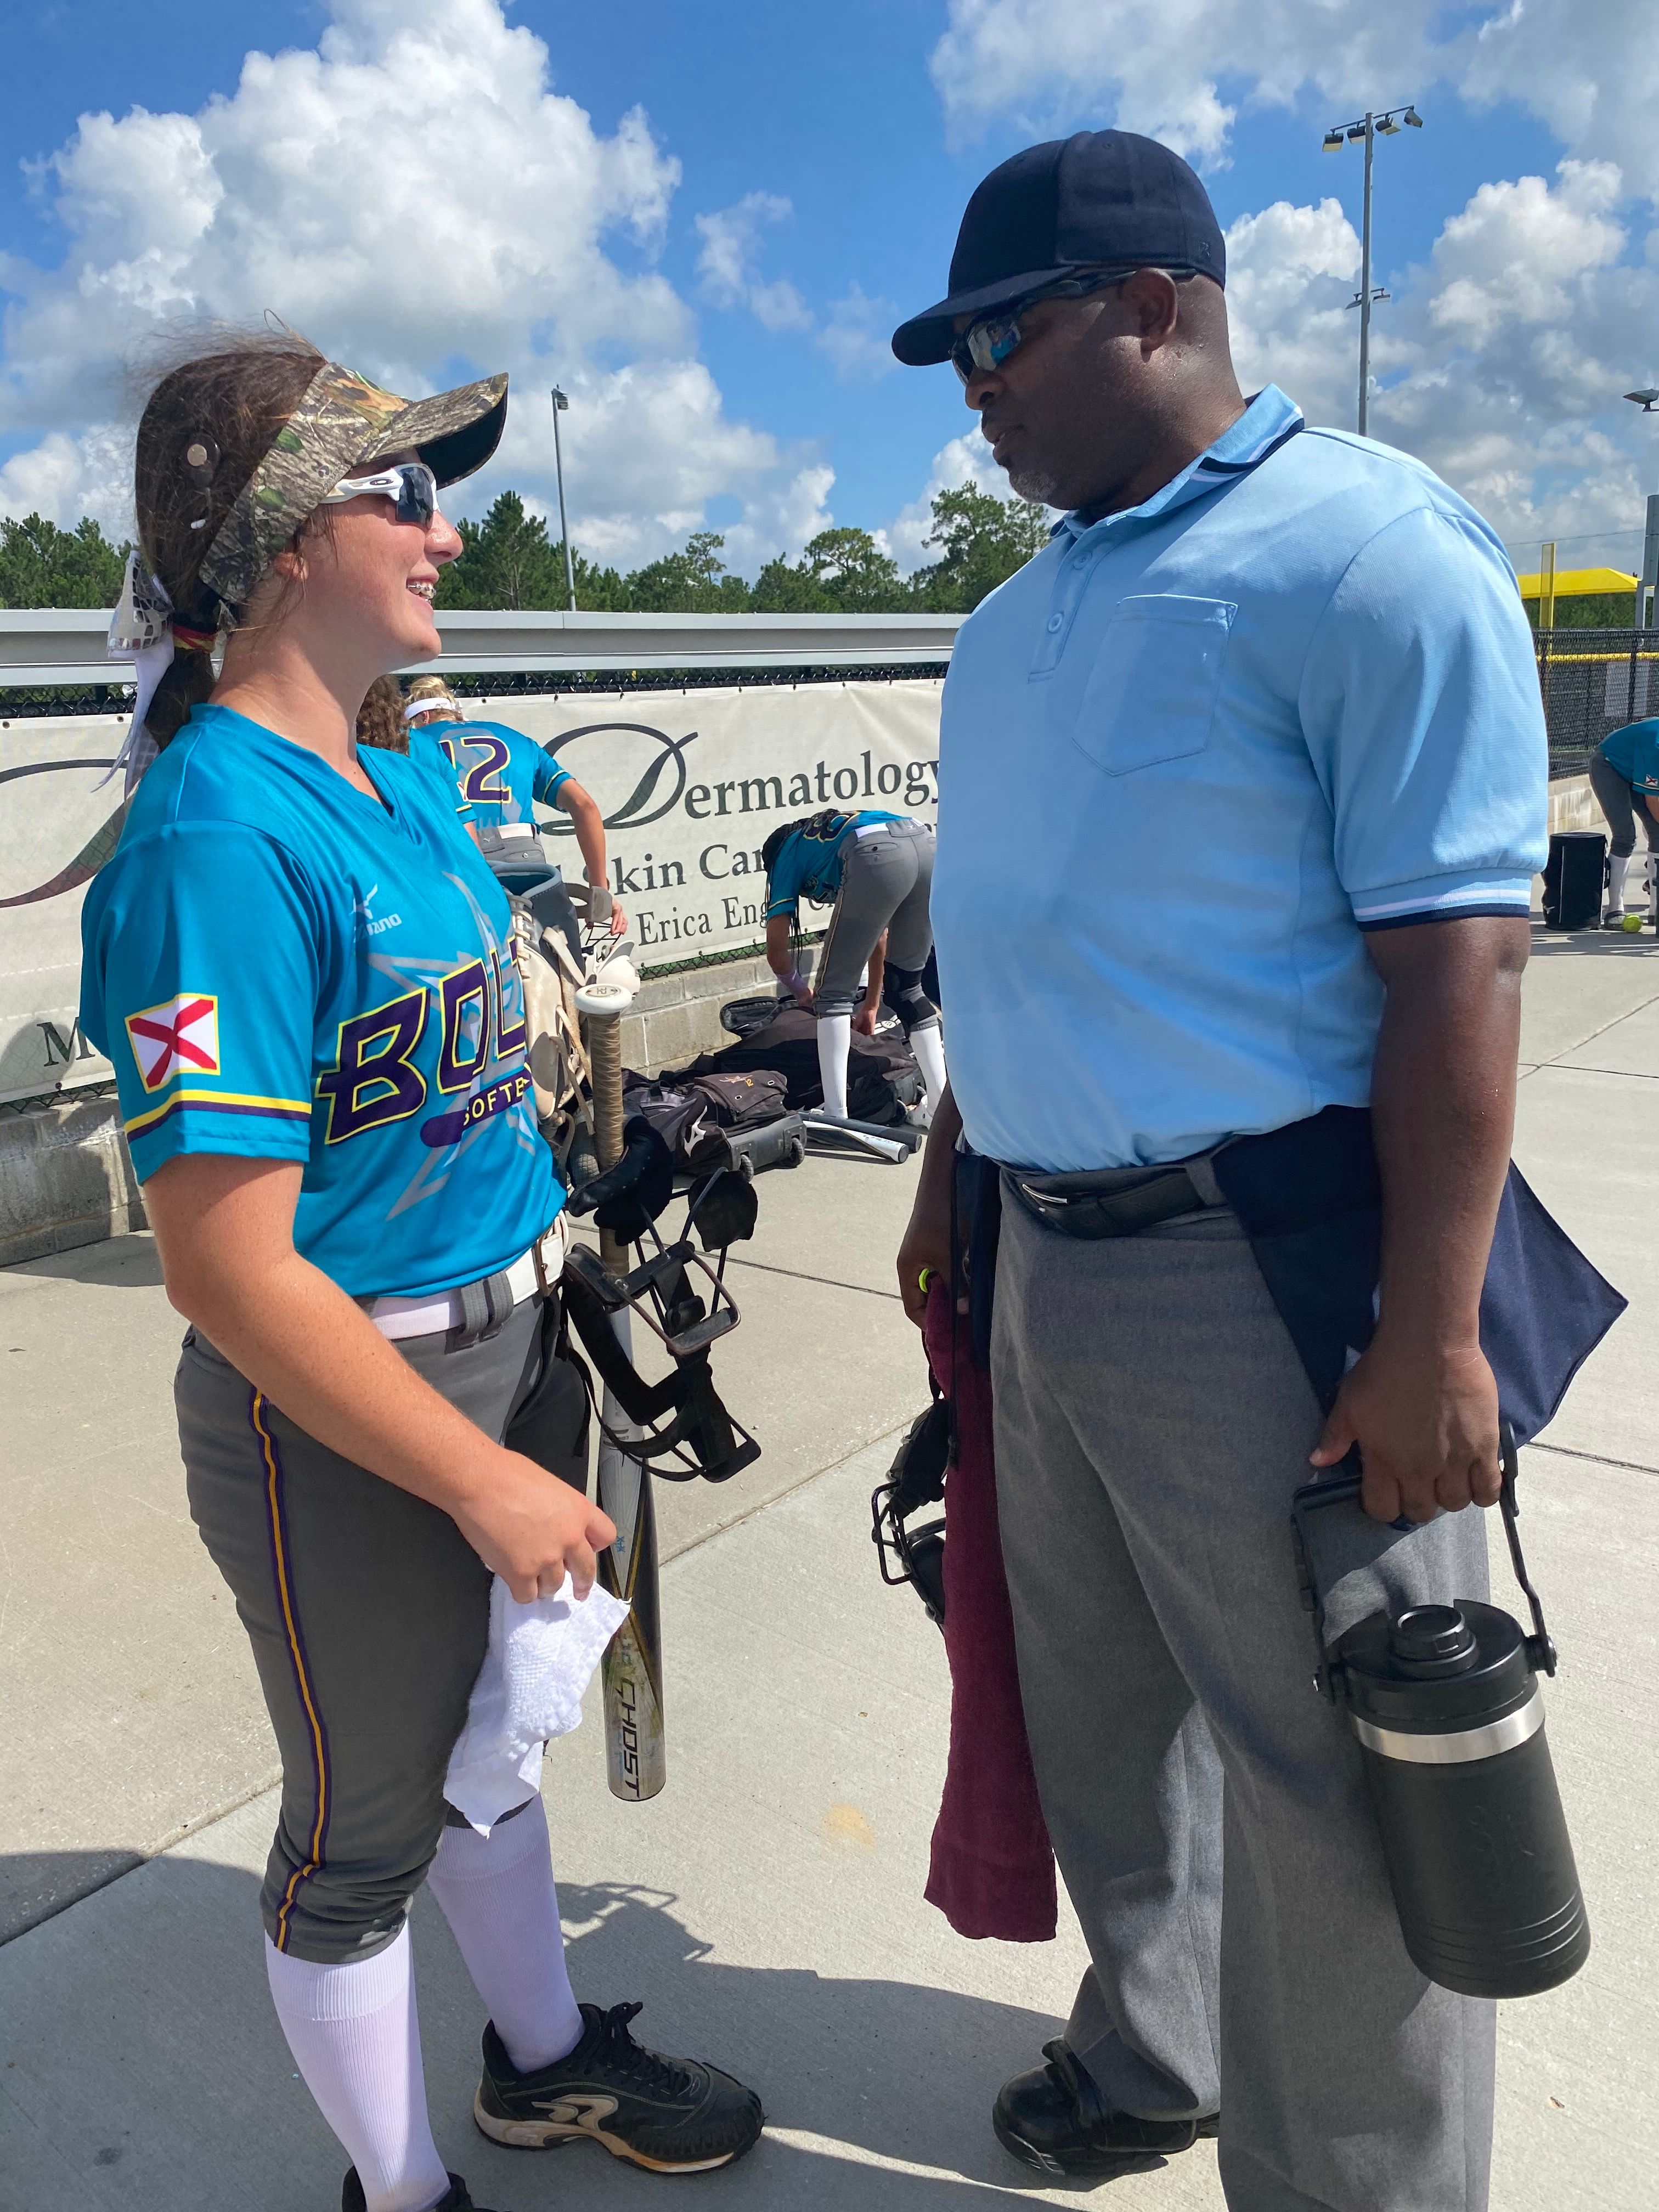 Lexi and the Umpire: Taking Time to Encourage One Another